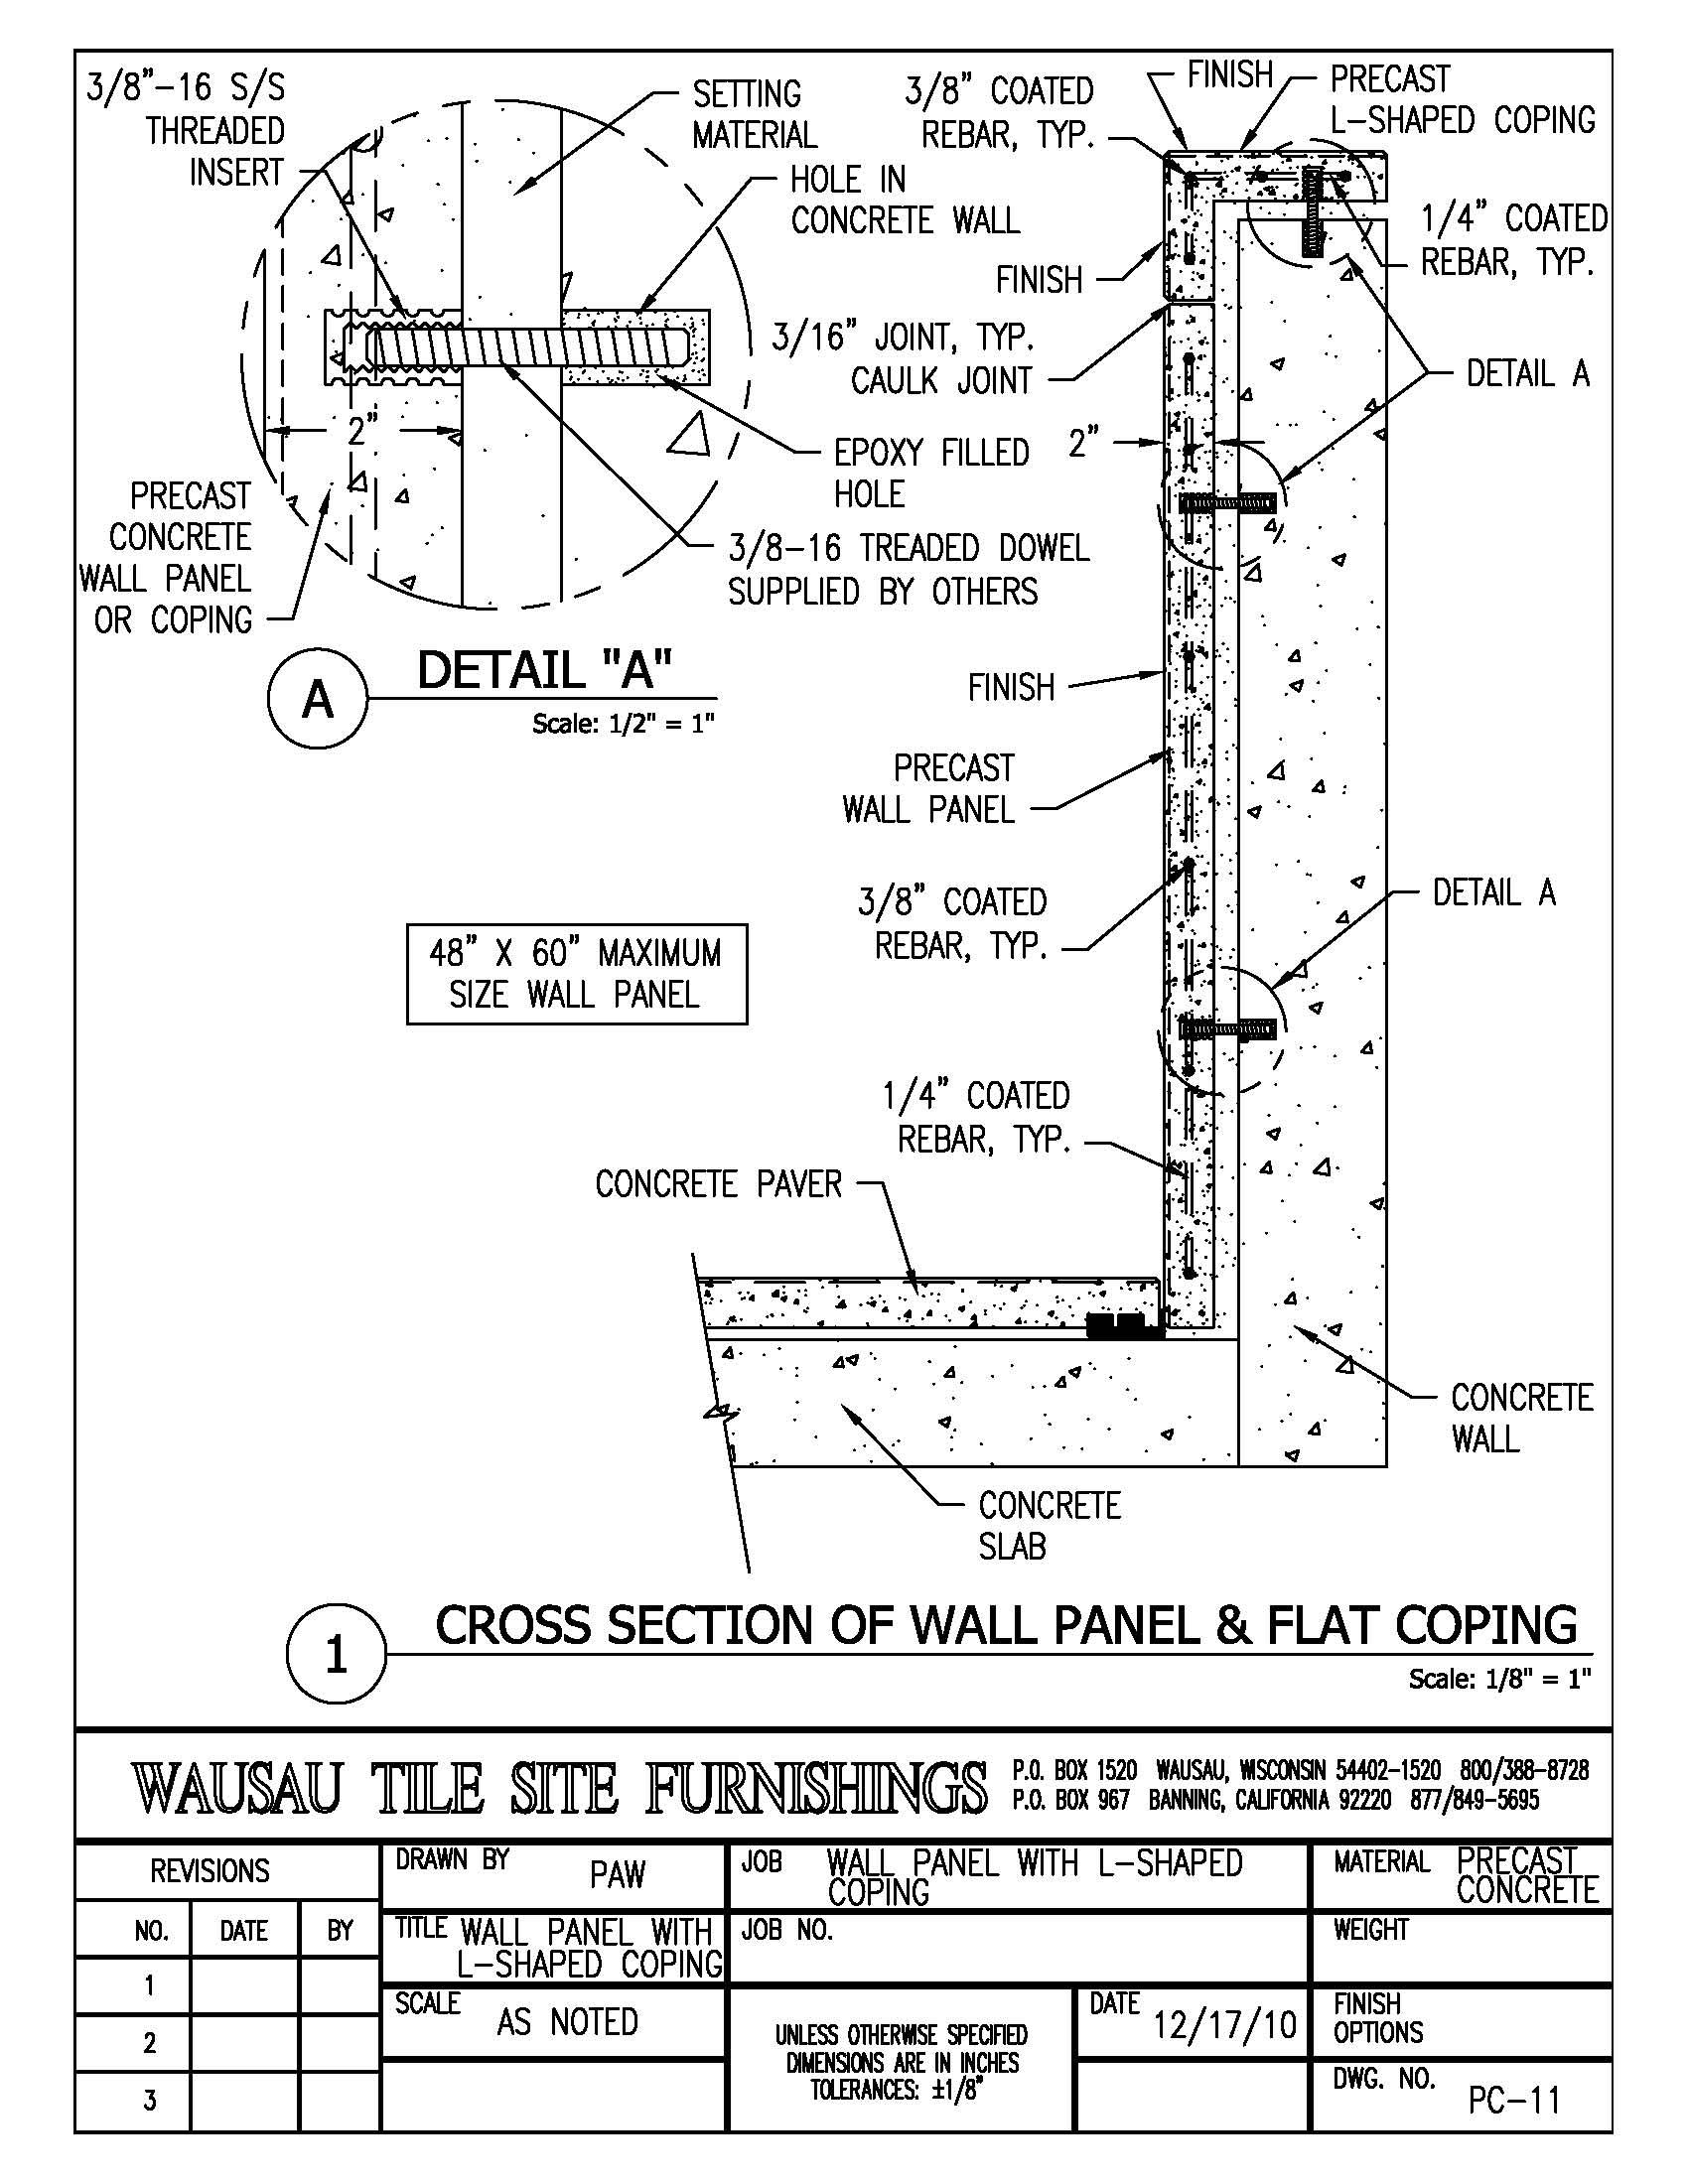 Wall Panes With L Shaped Coping Detail Http Www Wausautile Com Customprecastconcrete Details Cfm Concrete Wall Panels Concrete Wall Wausau